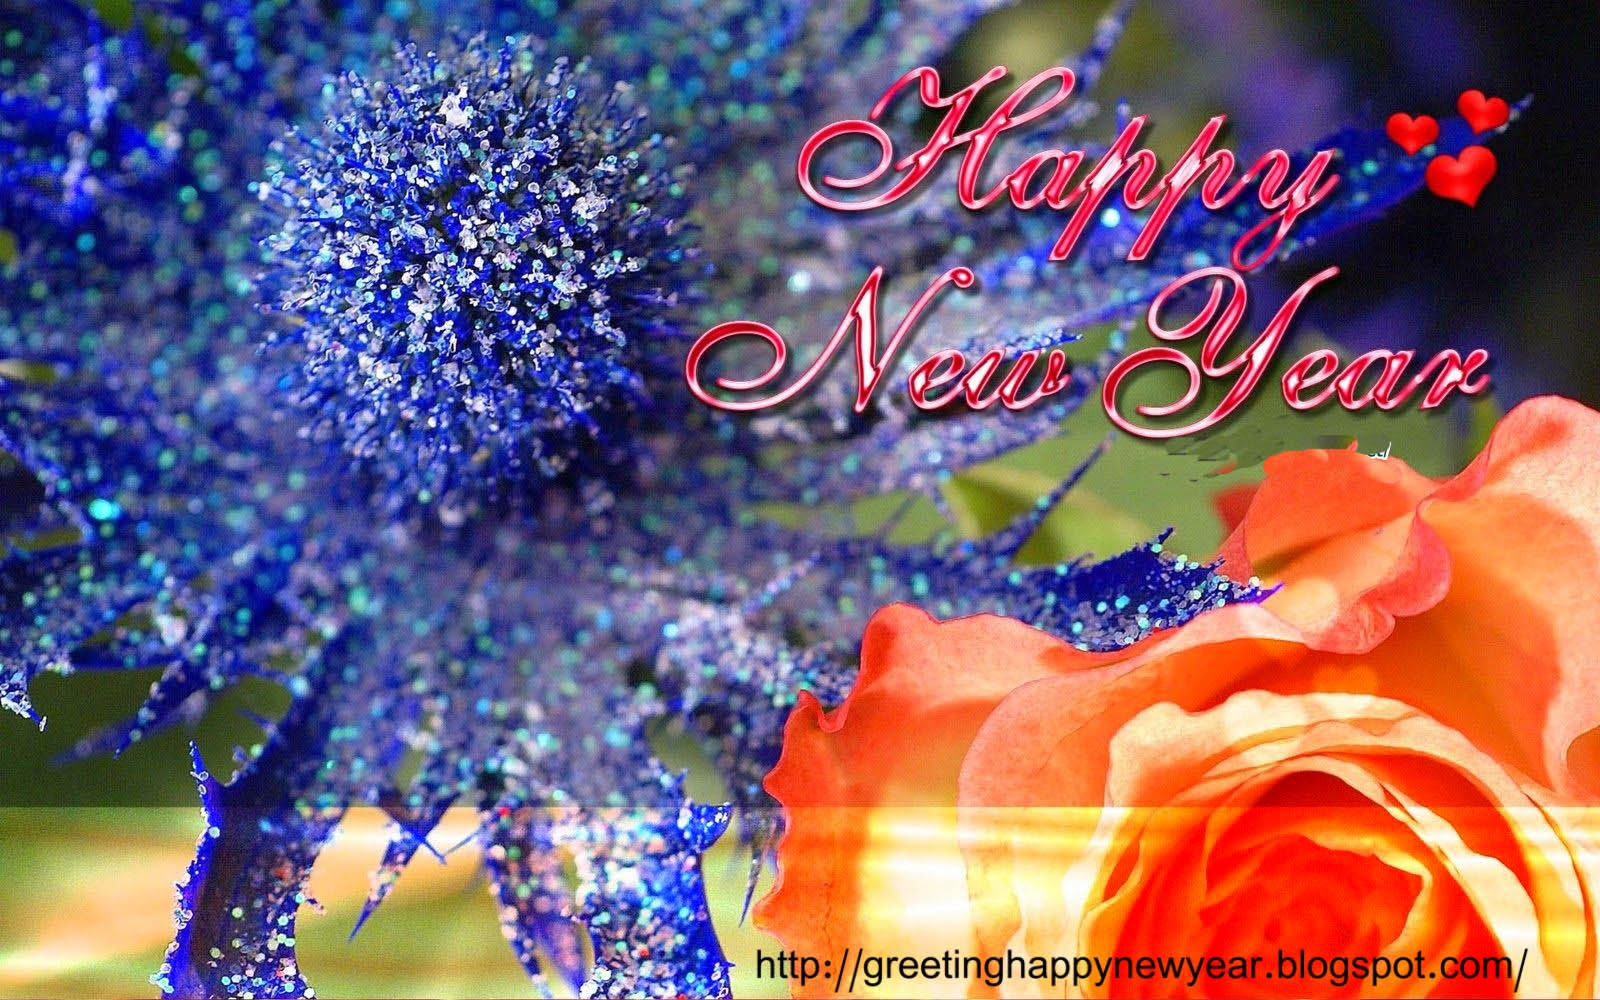 Awesome Happy New Year Cards 2015 – Free Photo Cards